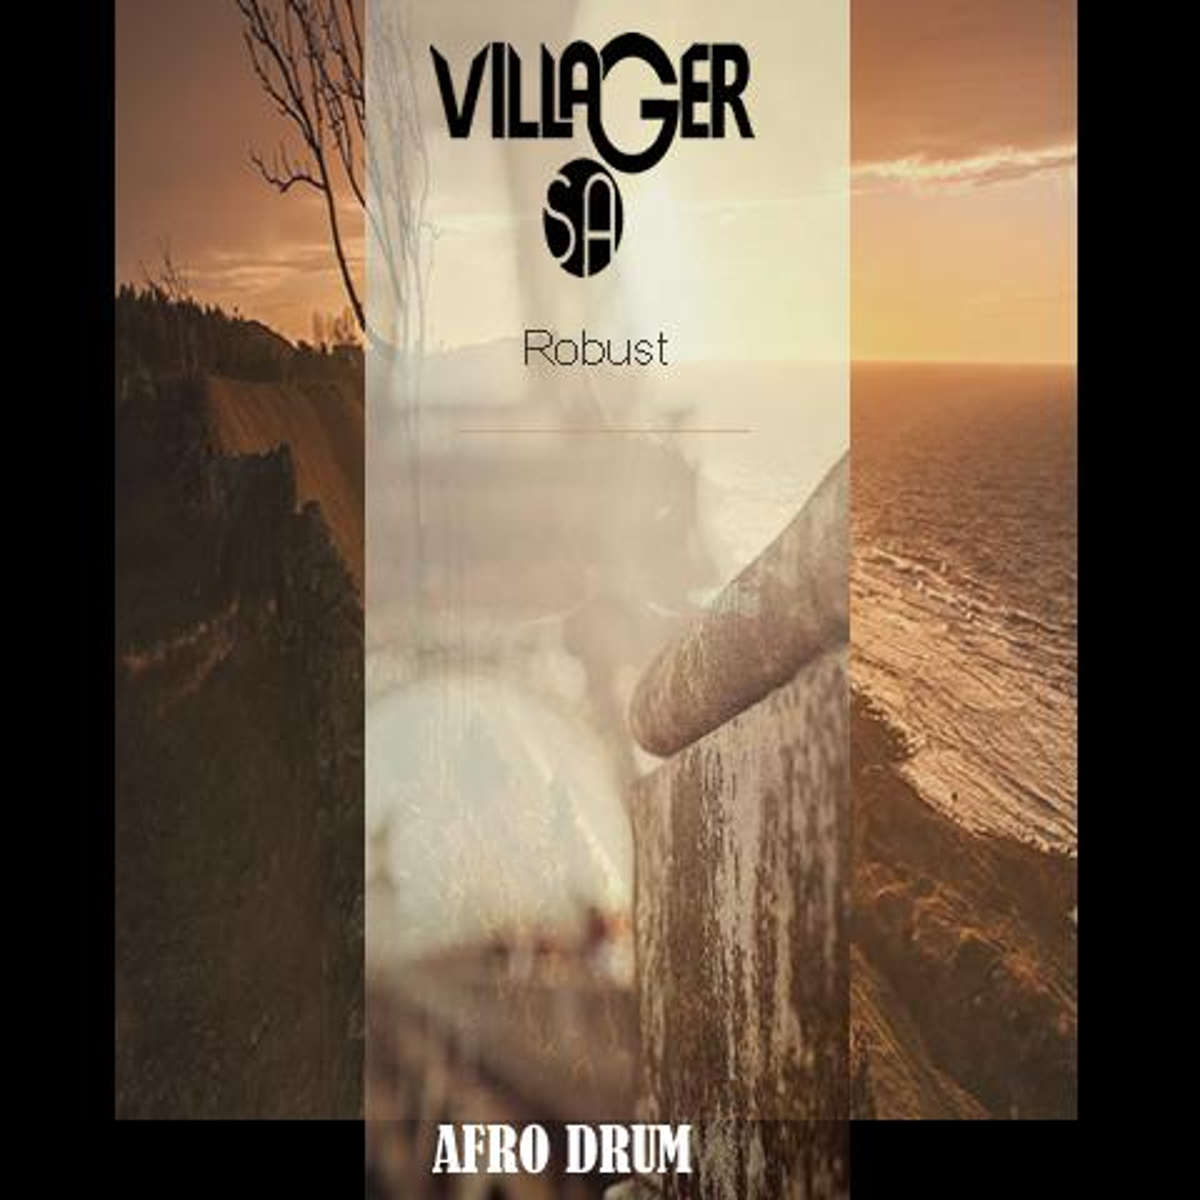 Villager SA - Robust (Afro Drum)